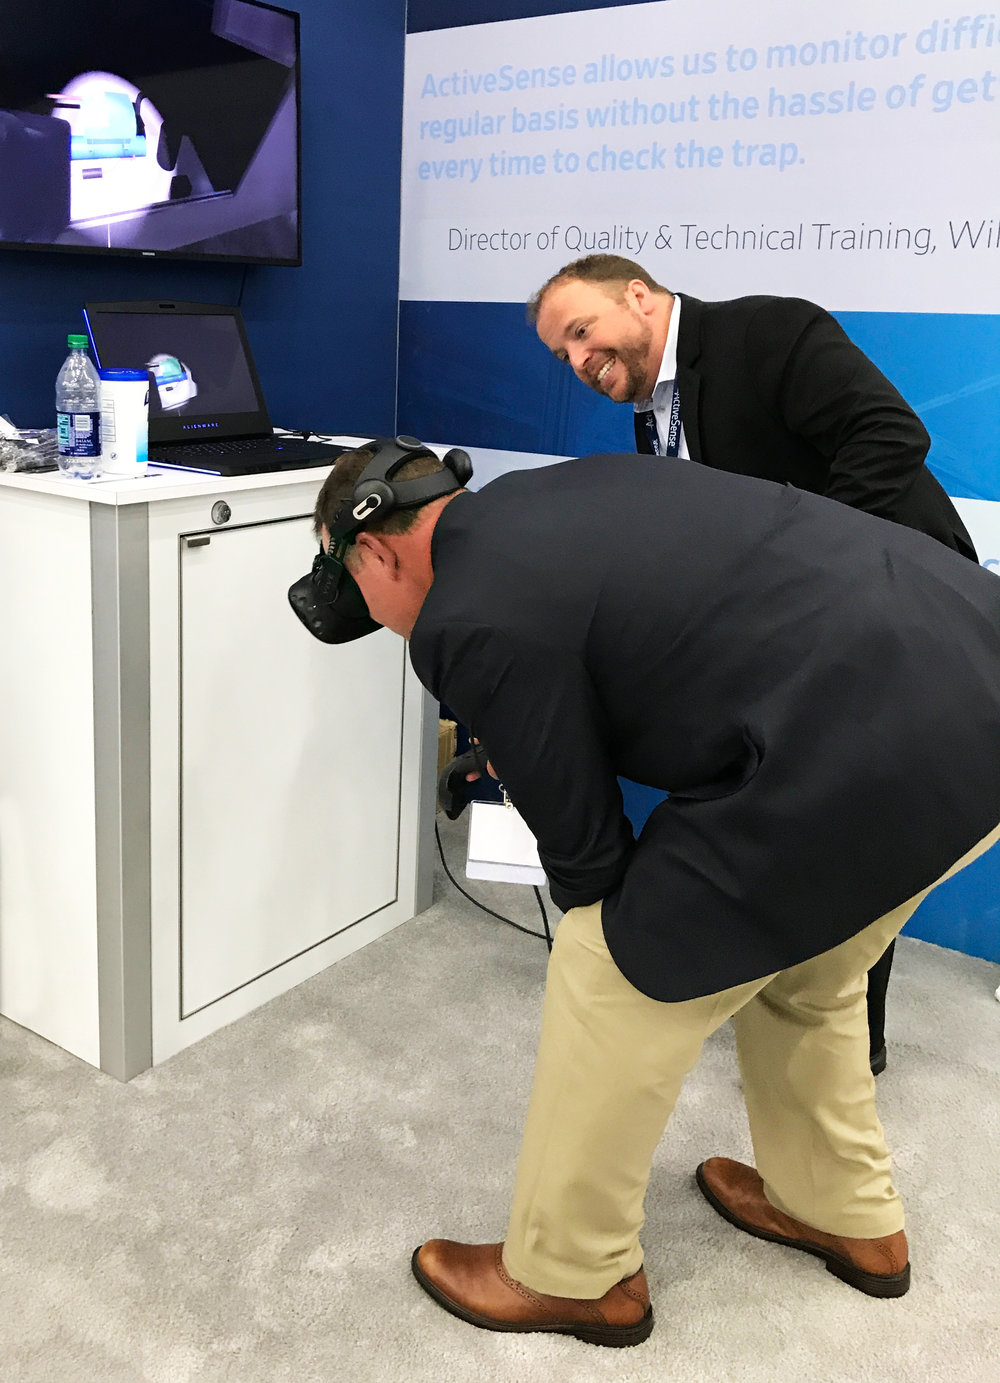 (An attendee of PestWorld 2017 inspects a compressor compartment for evidence of mice infestation with the use of a virtual reality training application built by VisionThree.)